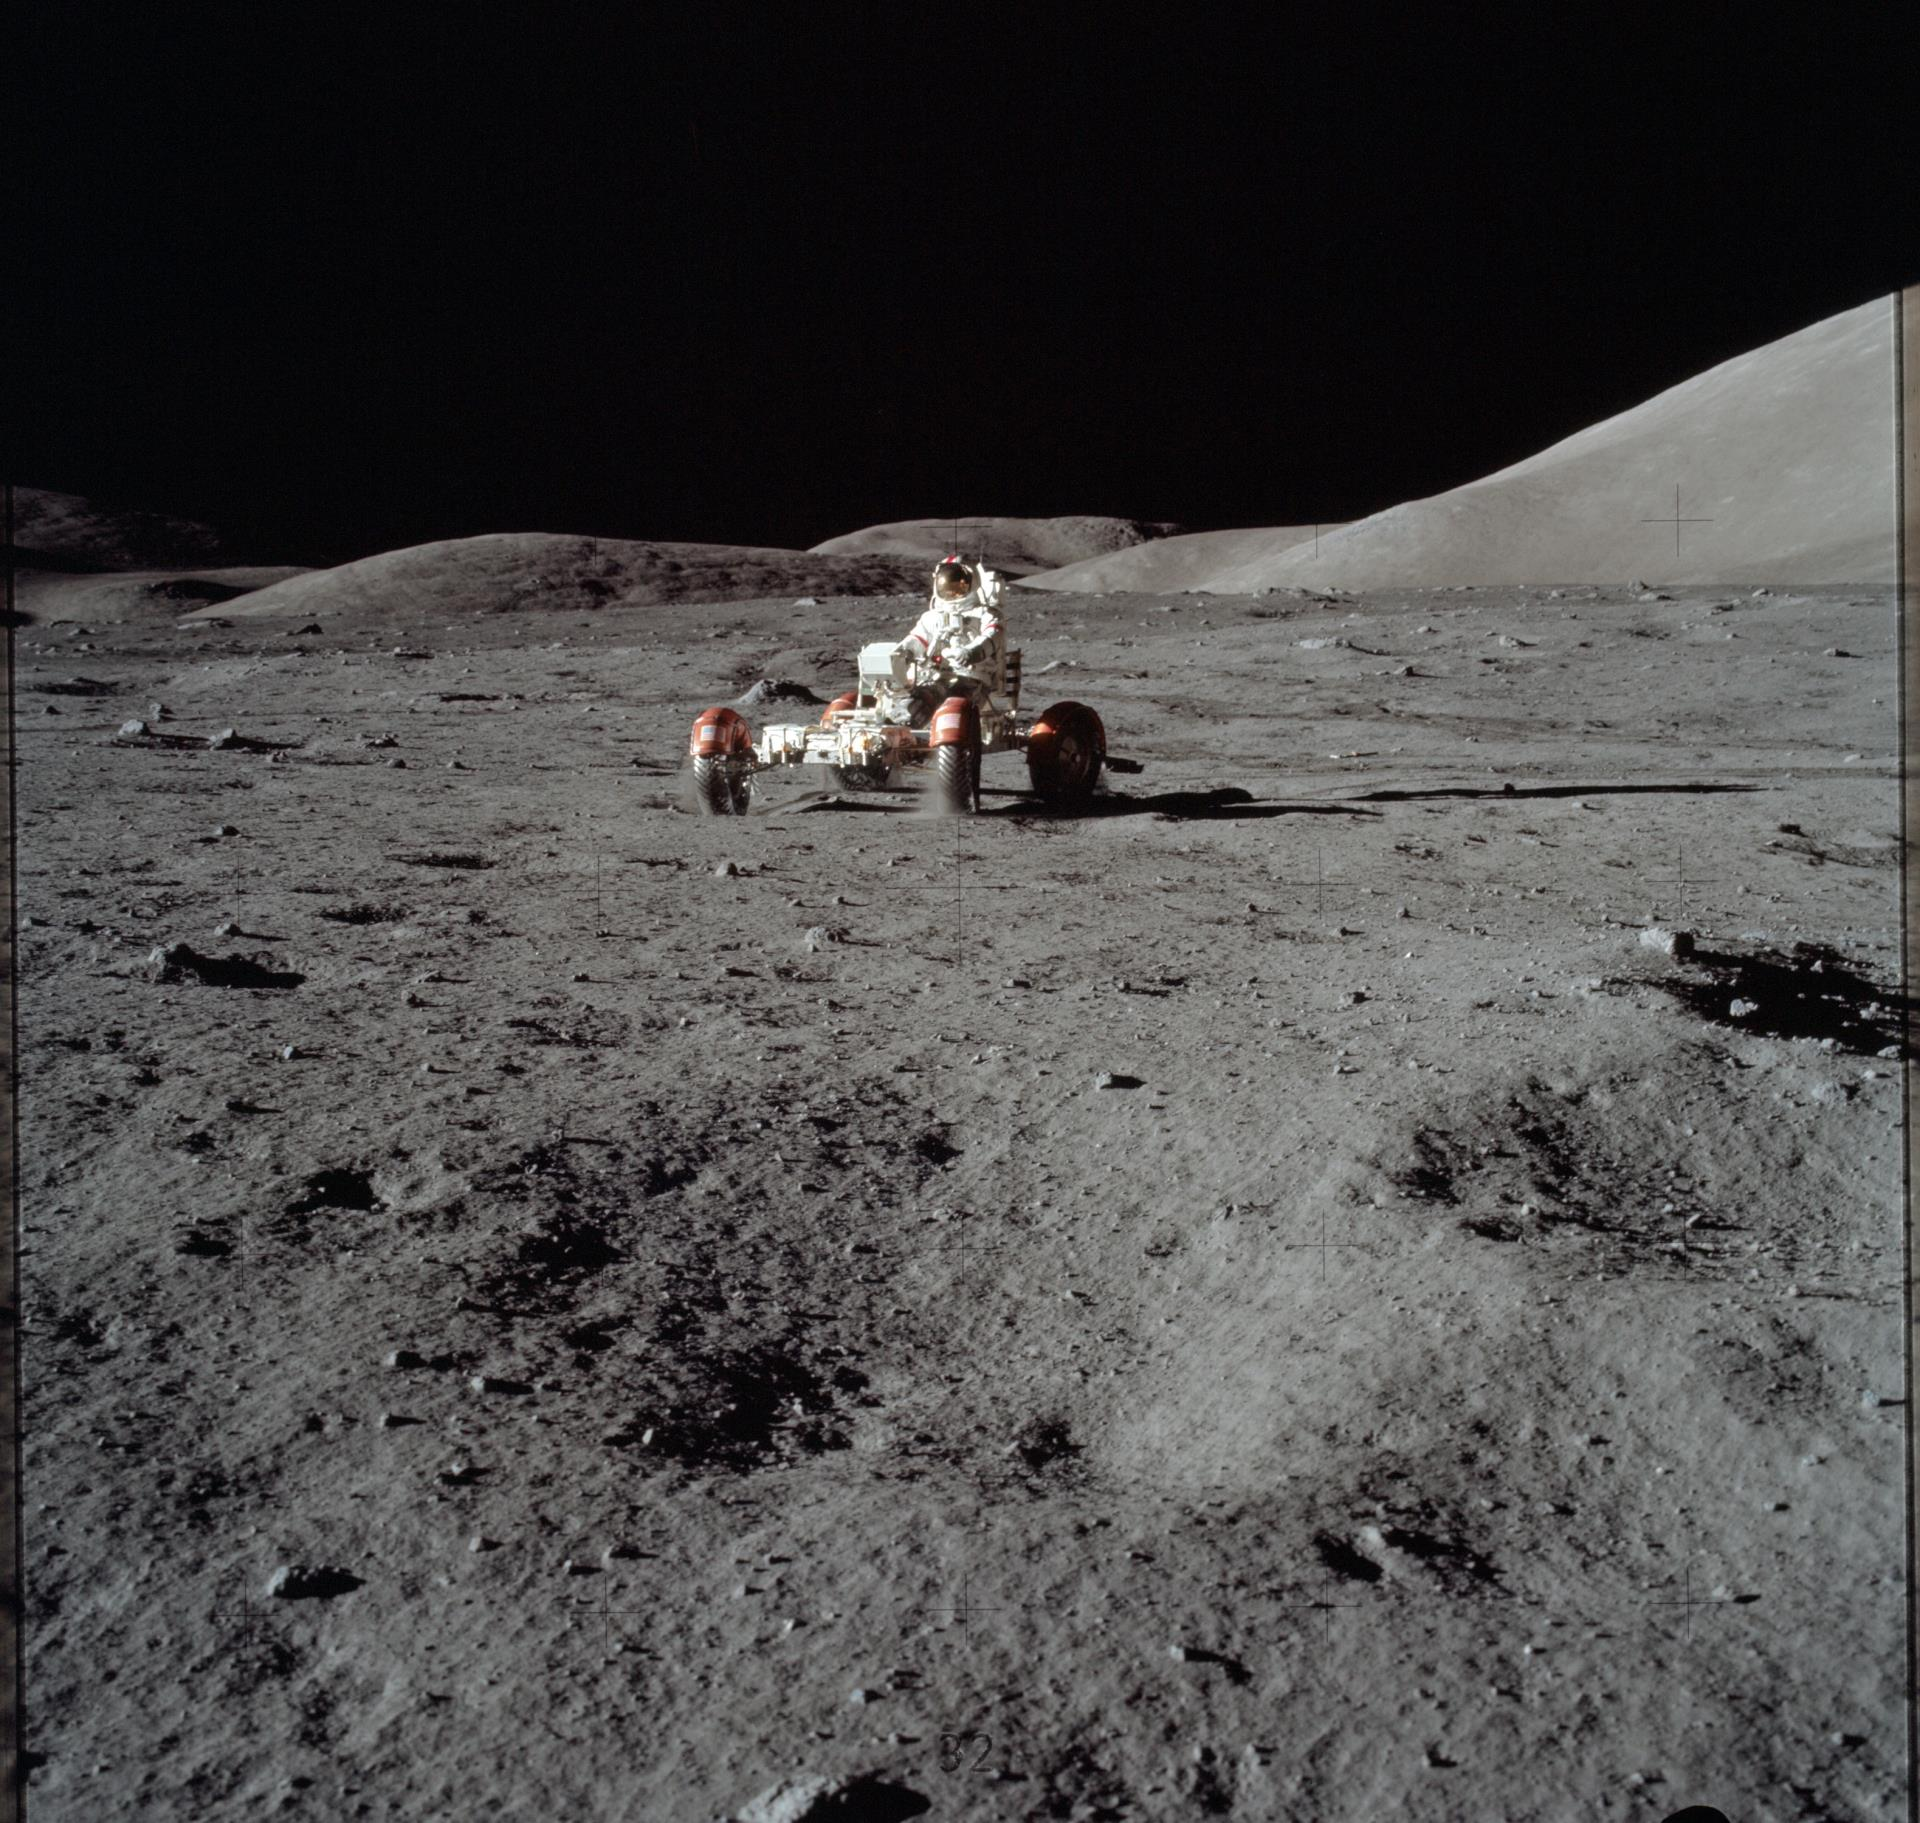 Astronaut driving moon buggy on the moon